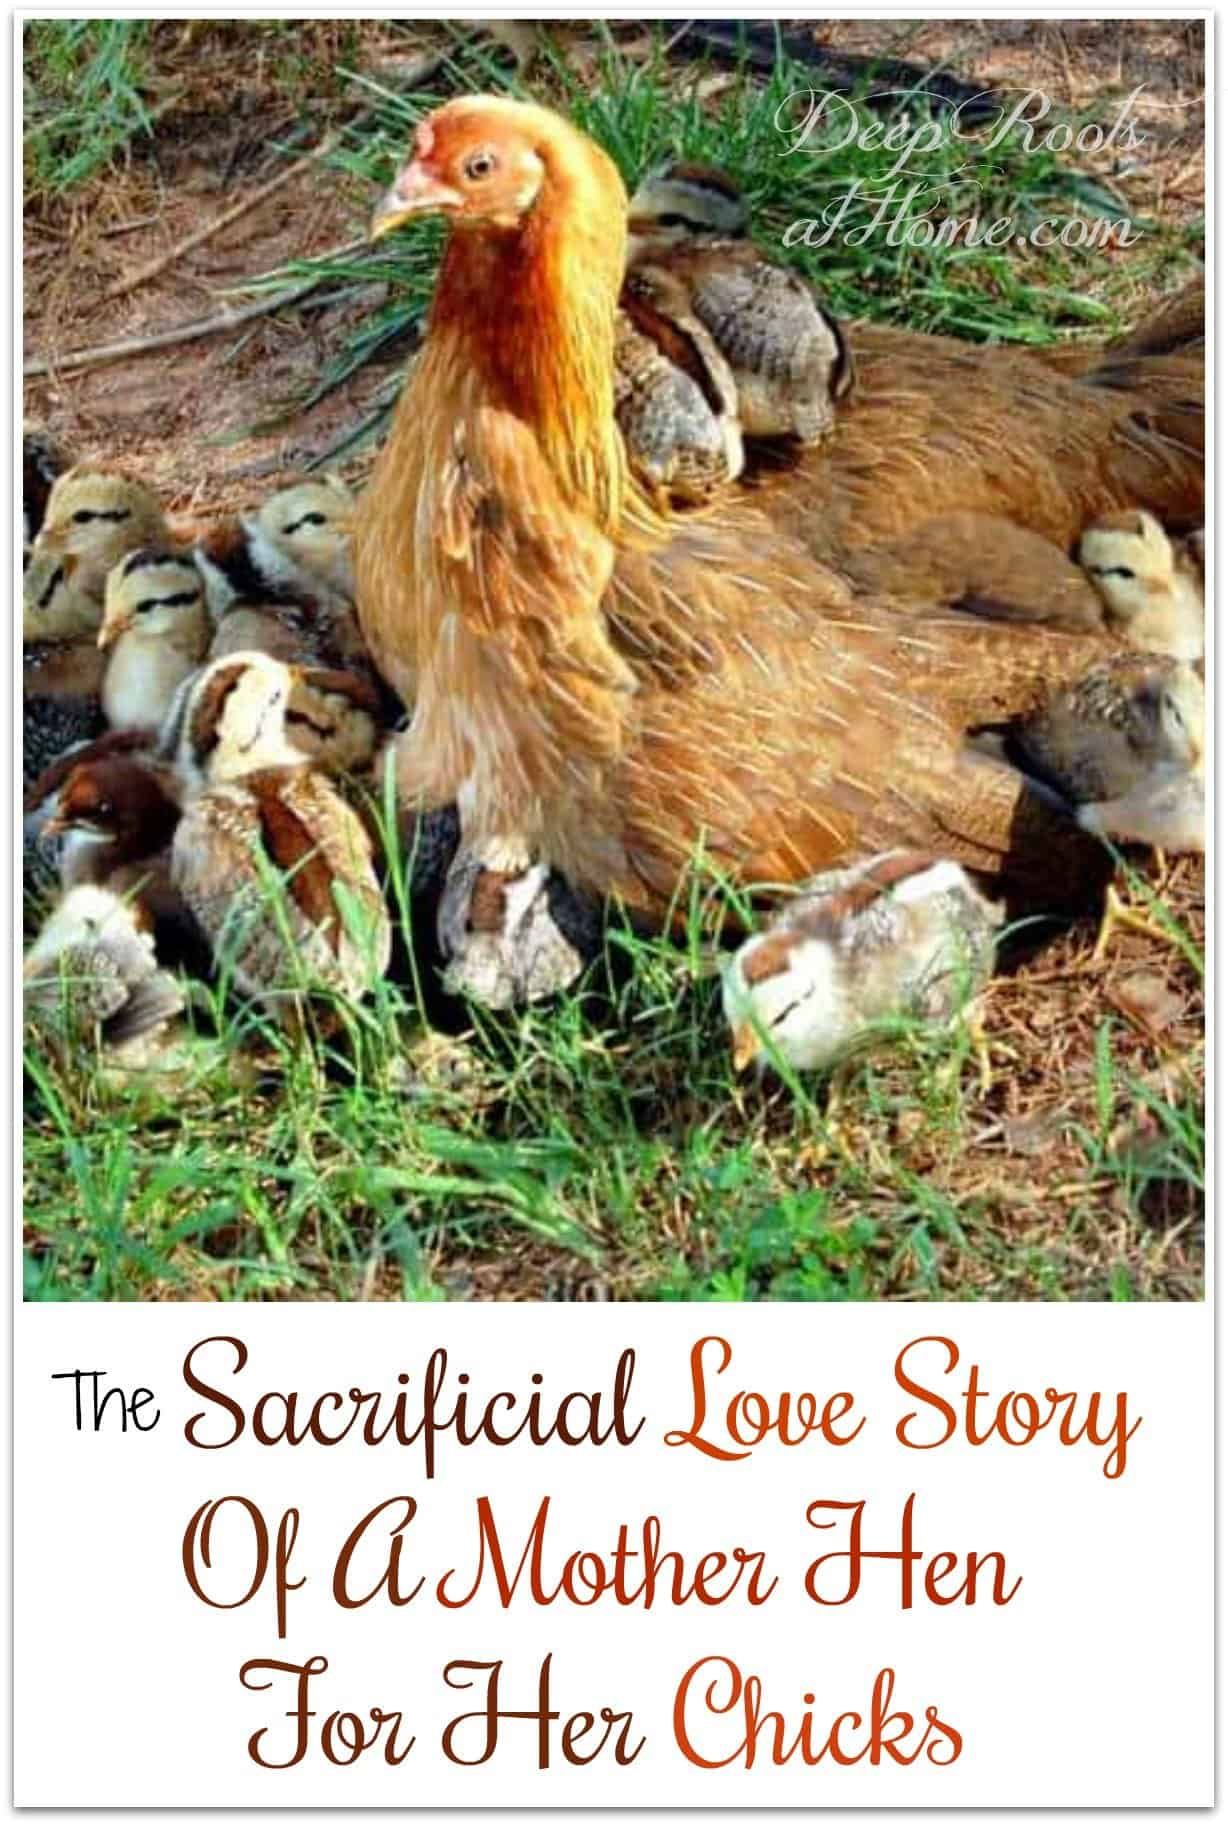 The Sacrificial Love Story Of A Mother Hen For Her Chicks. Hen surrounded by 15 chicks.